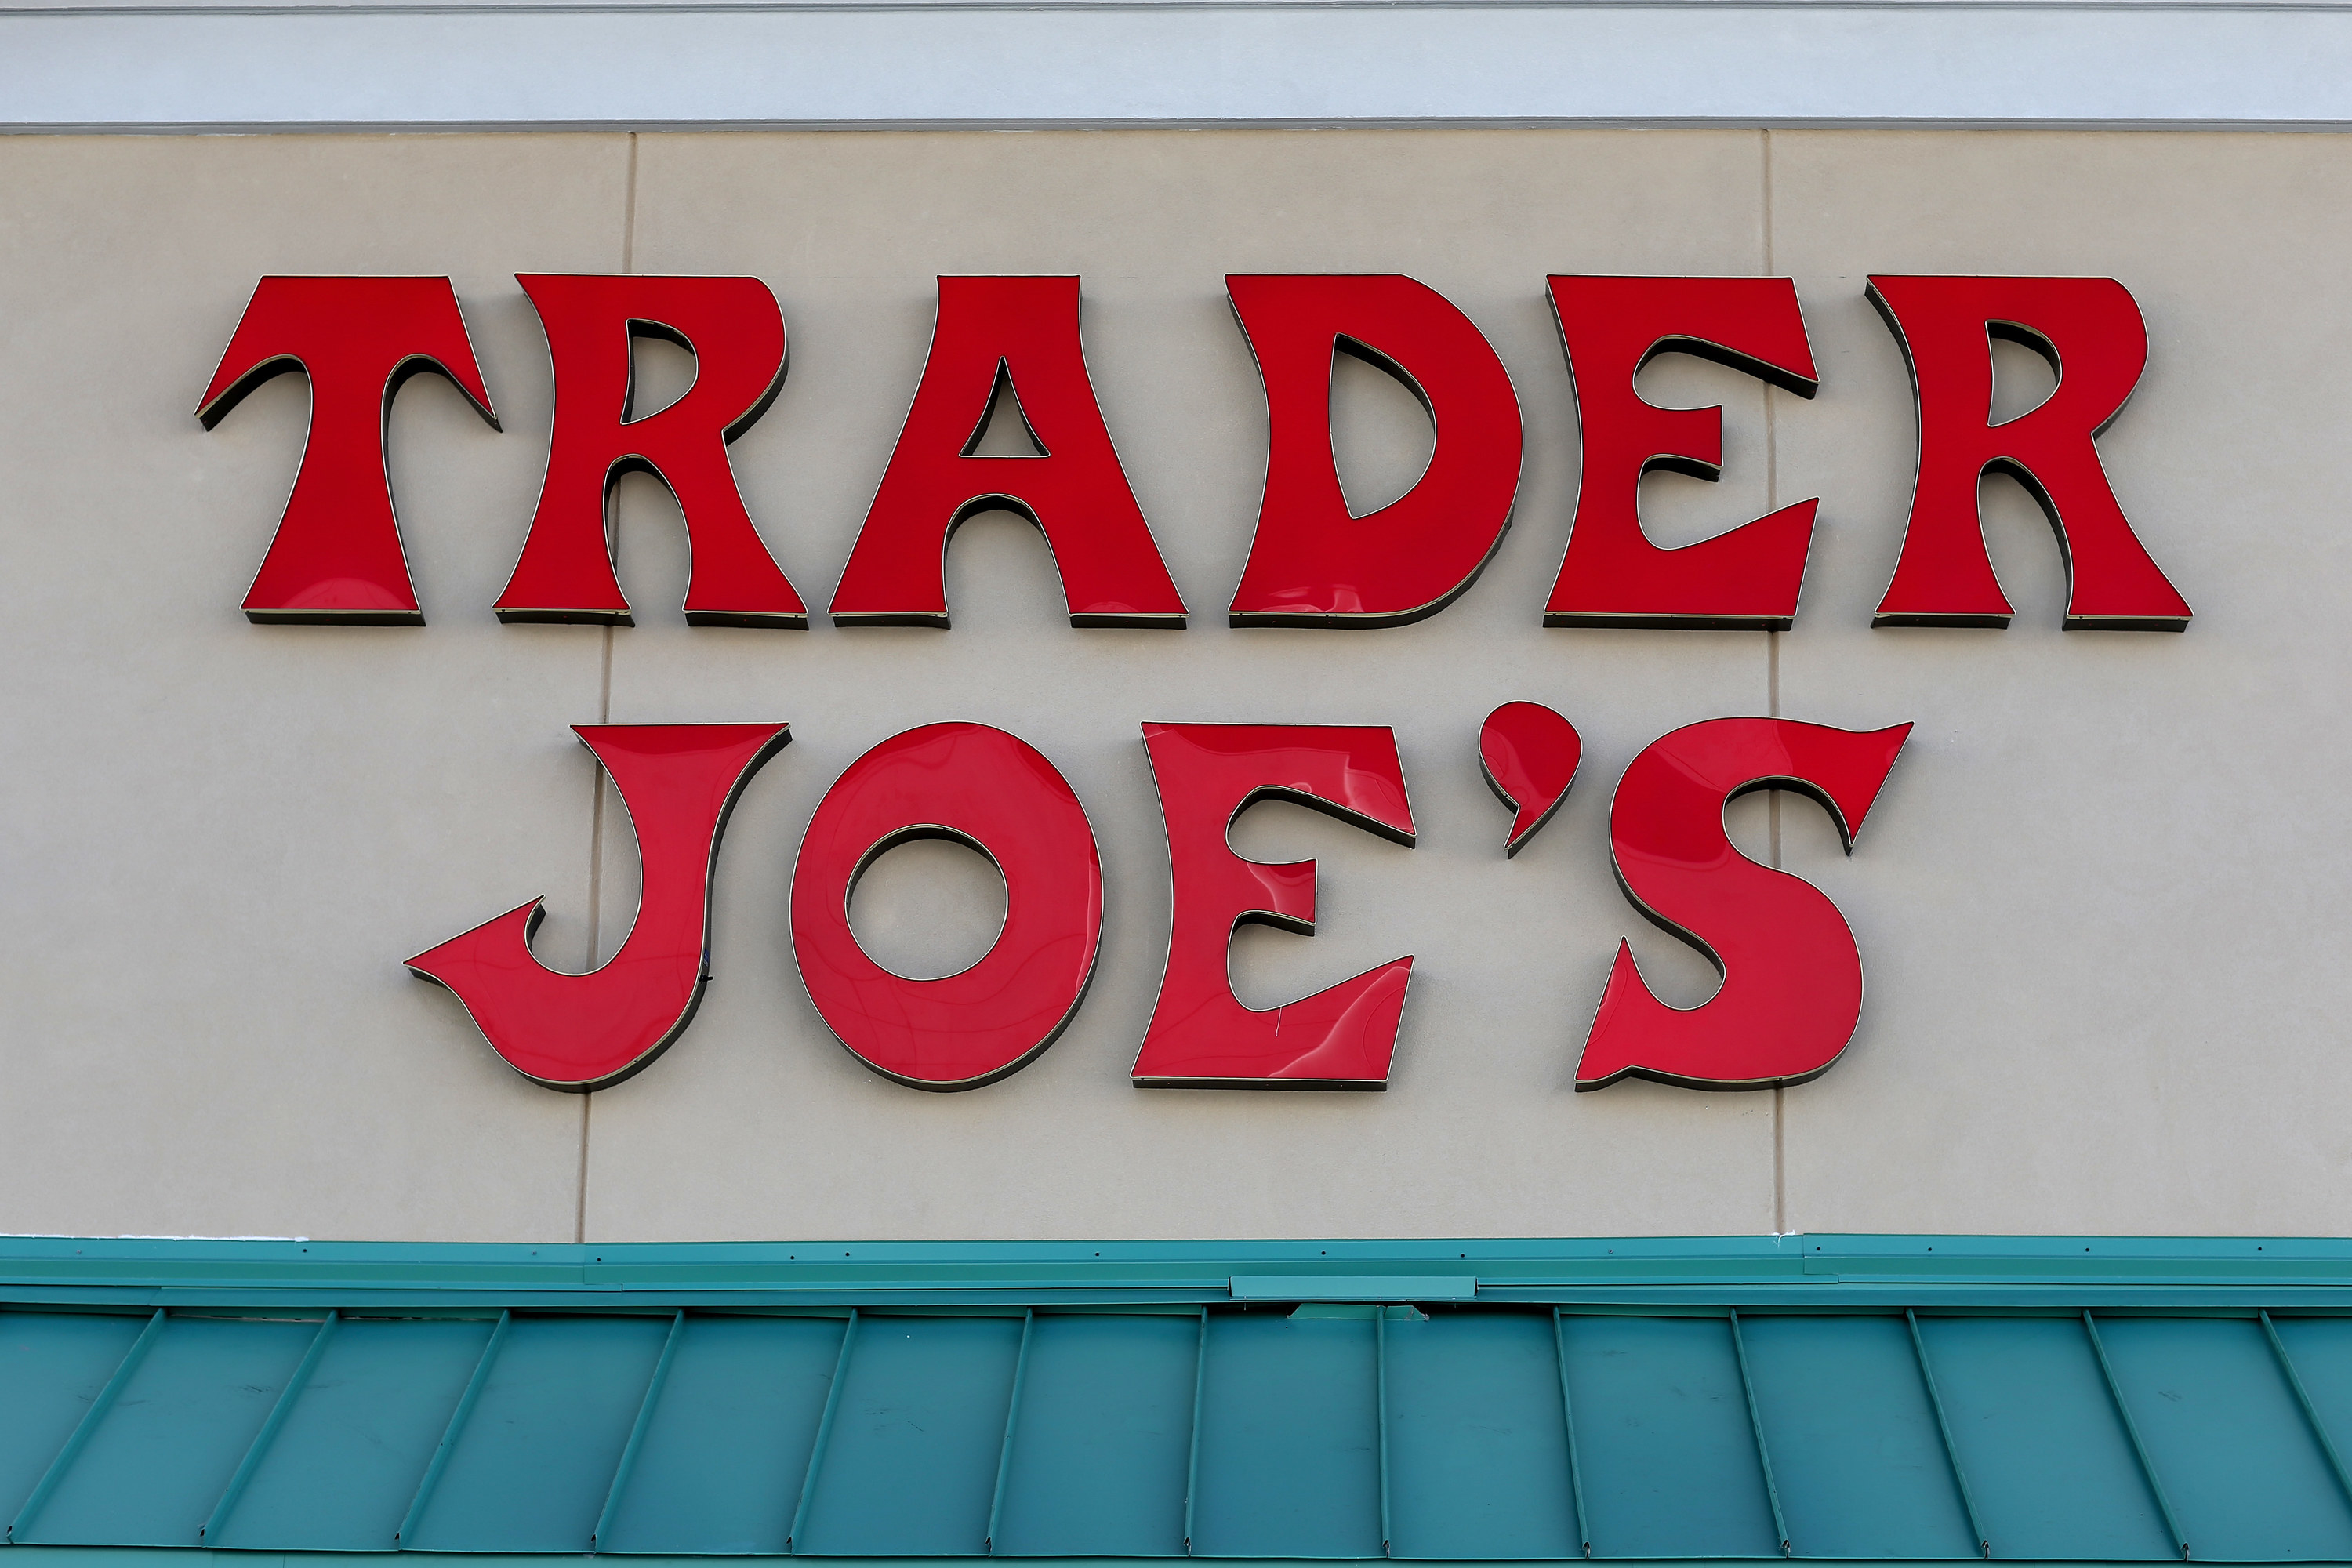 Red Trader Joe's sign in front of store.